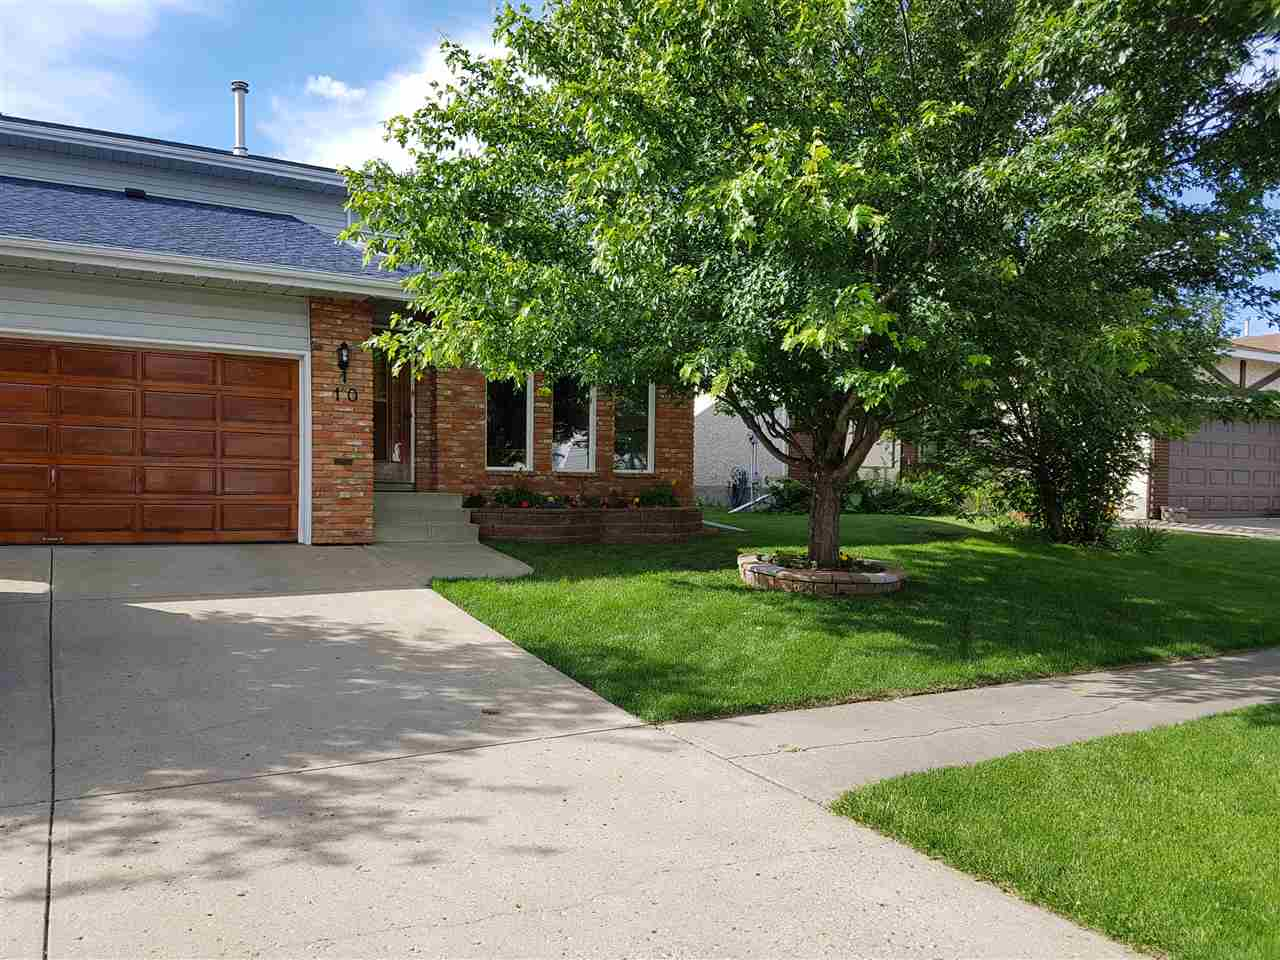 10 DONLEVY Place, St. Albert, AB T8N 4W2